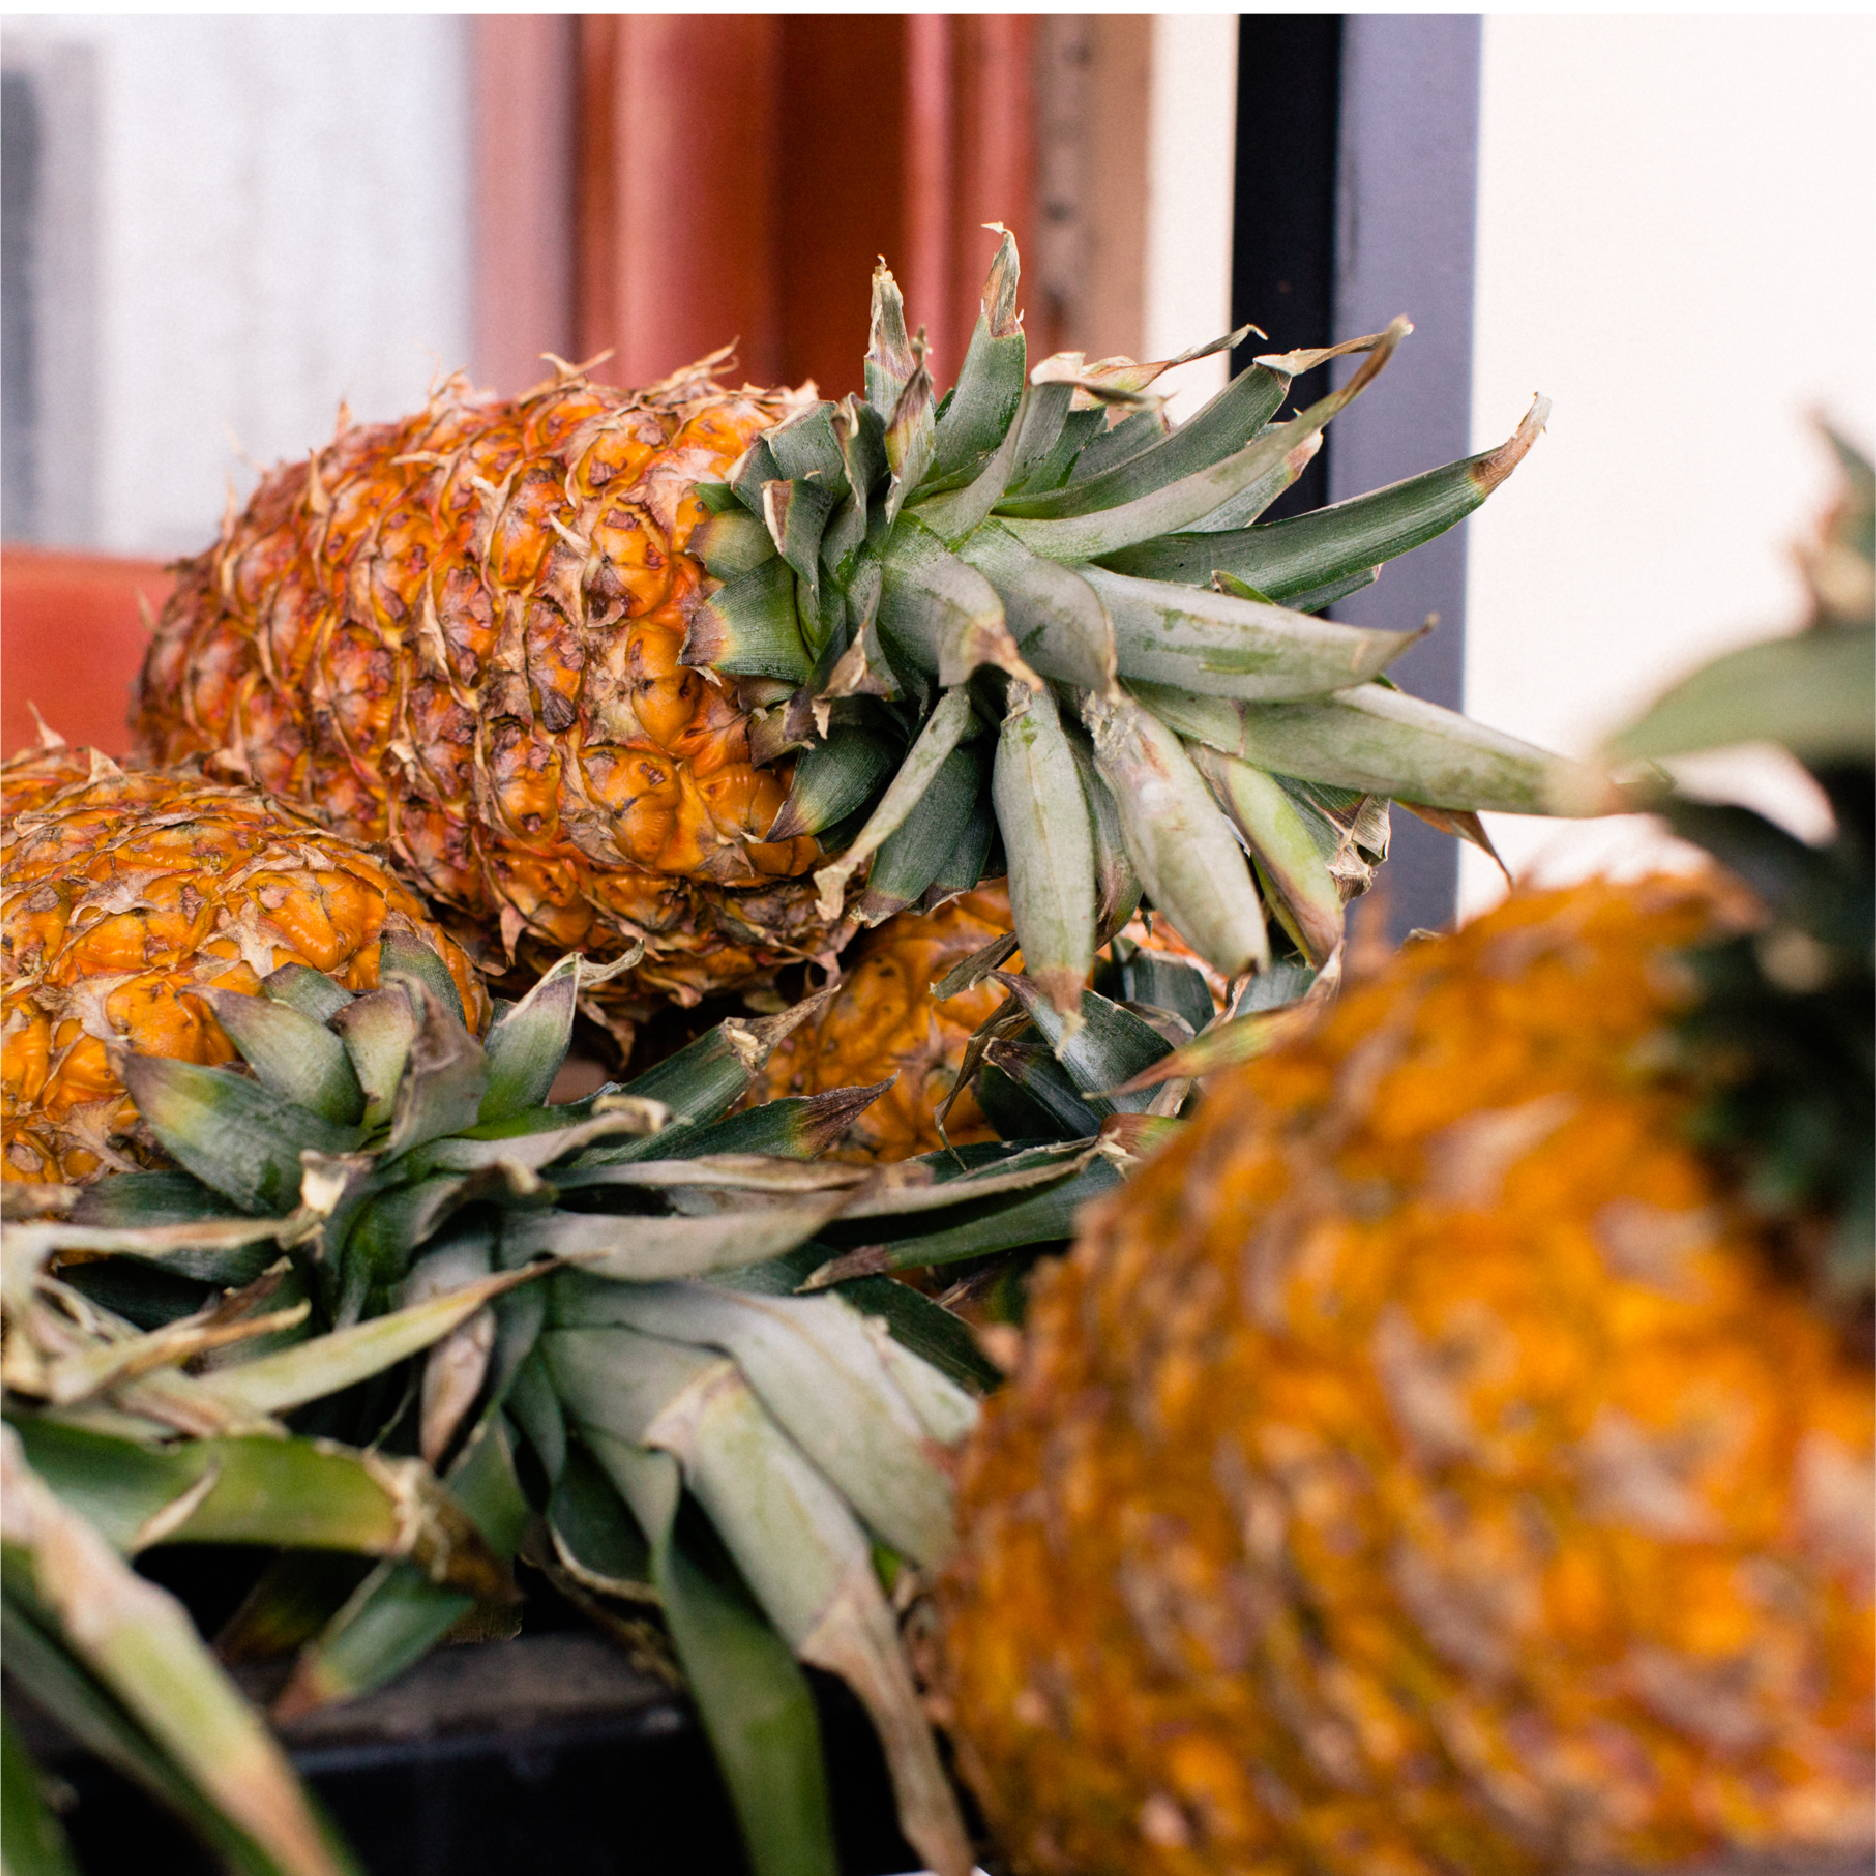 A pile of pineapples sit on a shelf outside of the kitchen at Good Shepherd Children's Home in Honduras.